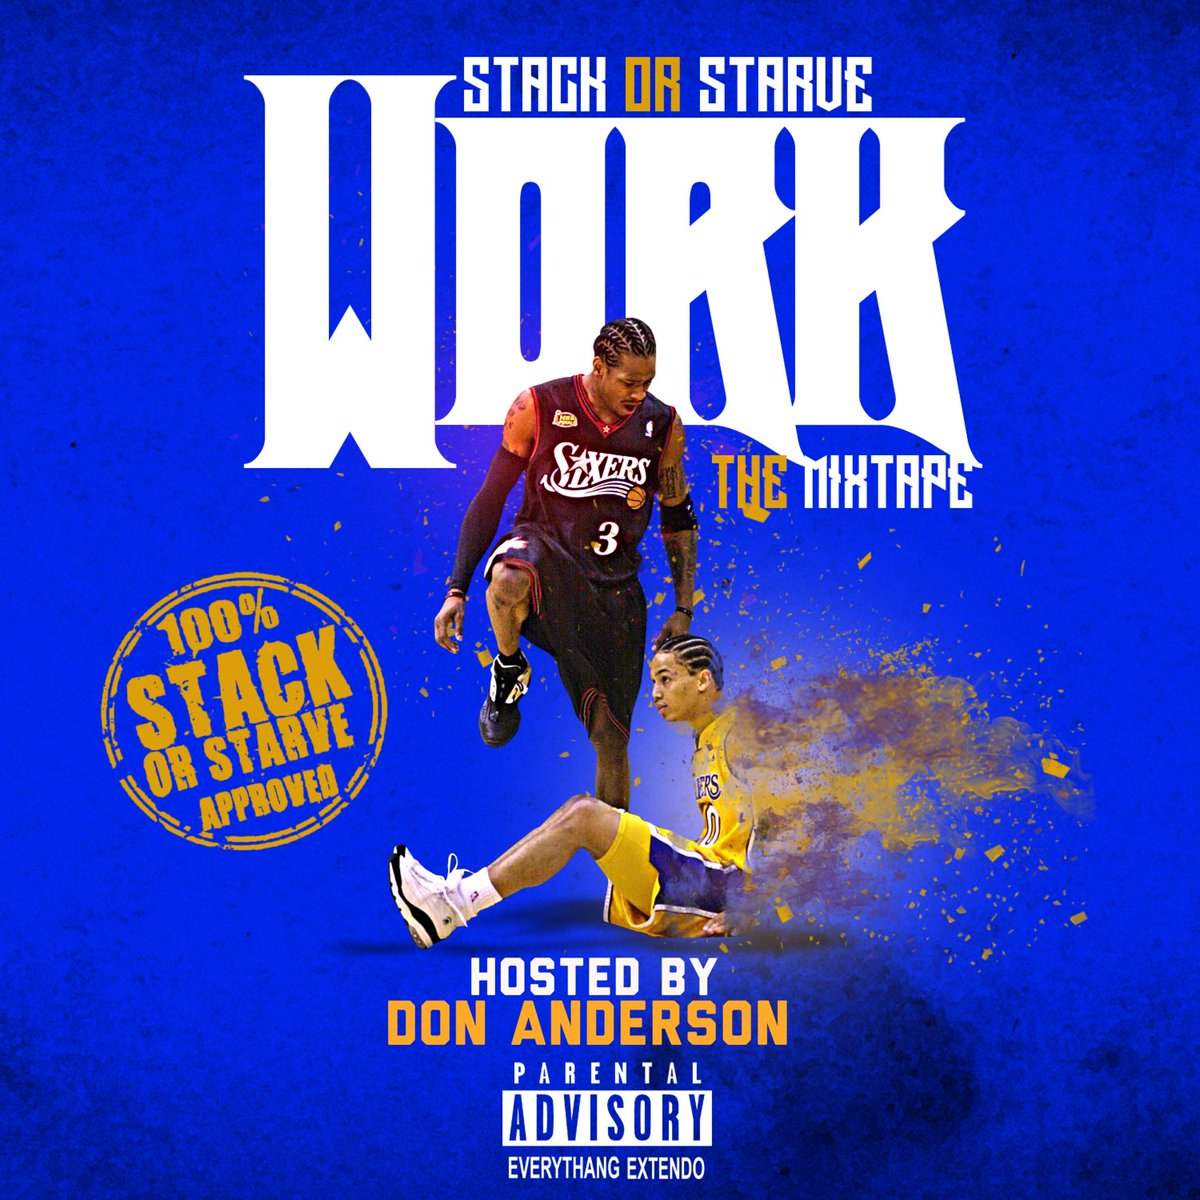 #NewMixtape #Work hosted by @StackorStarvDJS @DaDonGED available right now via @LiveMixtapes @indytapes check it out here  #GEDEmpire #StackOrStarveApproved #EverythingzWorkin #PayAttention